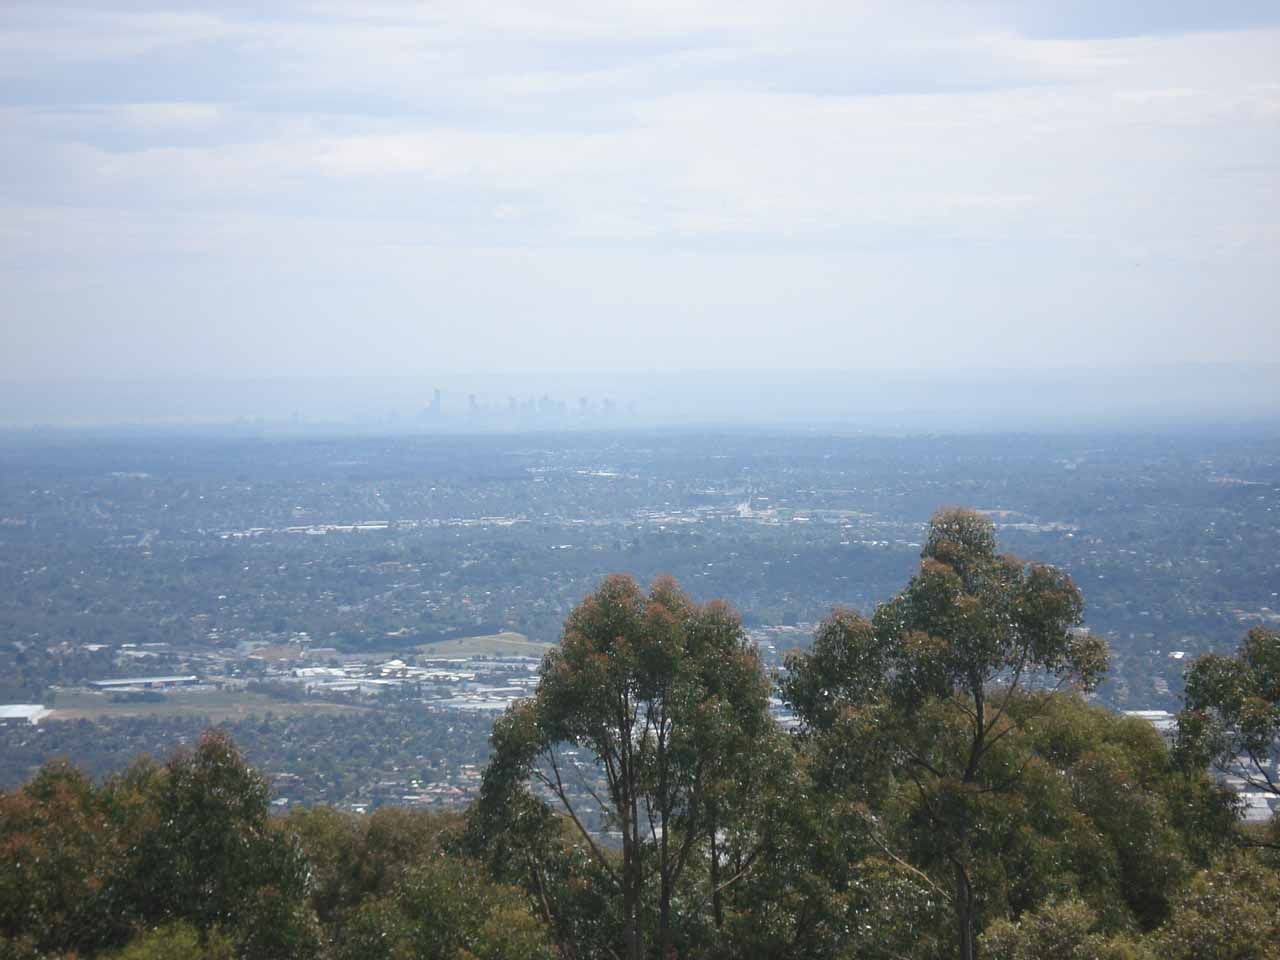 View of Melbourne from Mt Dandenong